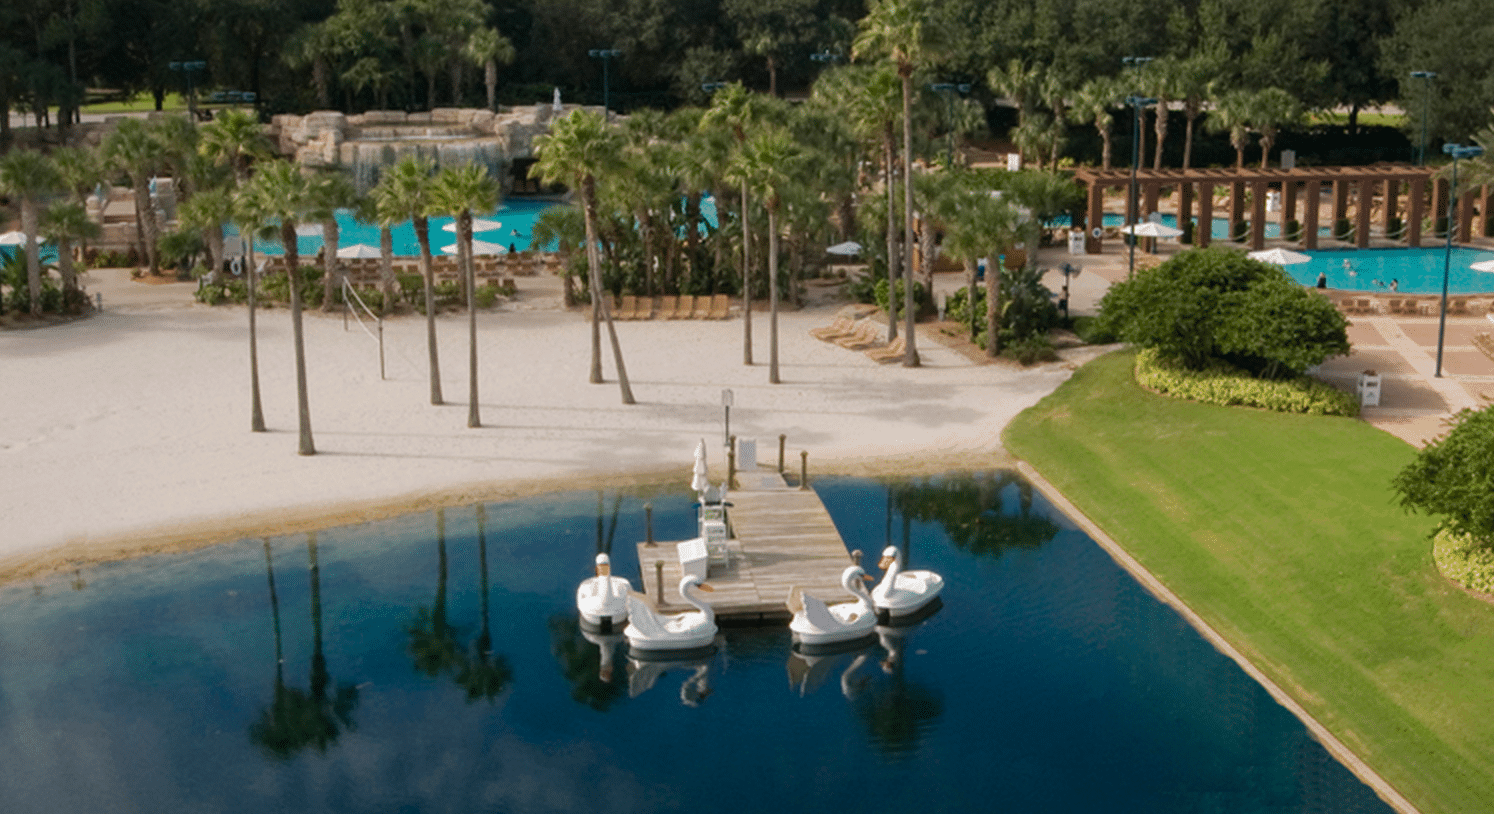 swandolphin - How to tour Disney World resorts (even if you're not staying there)